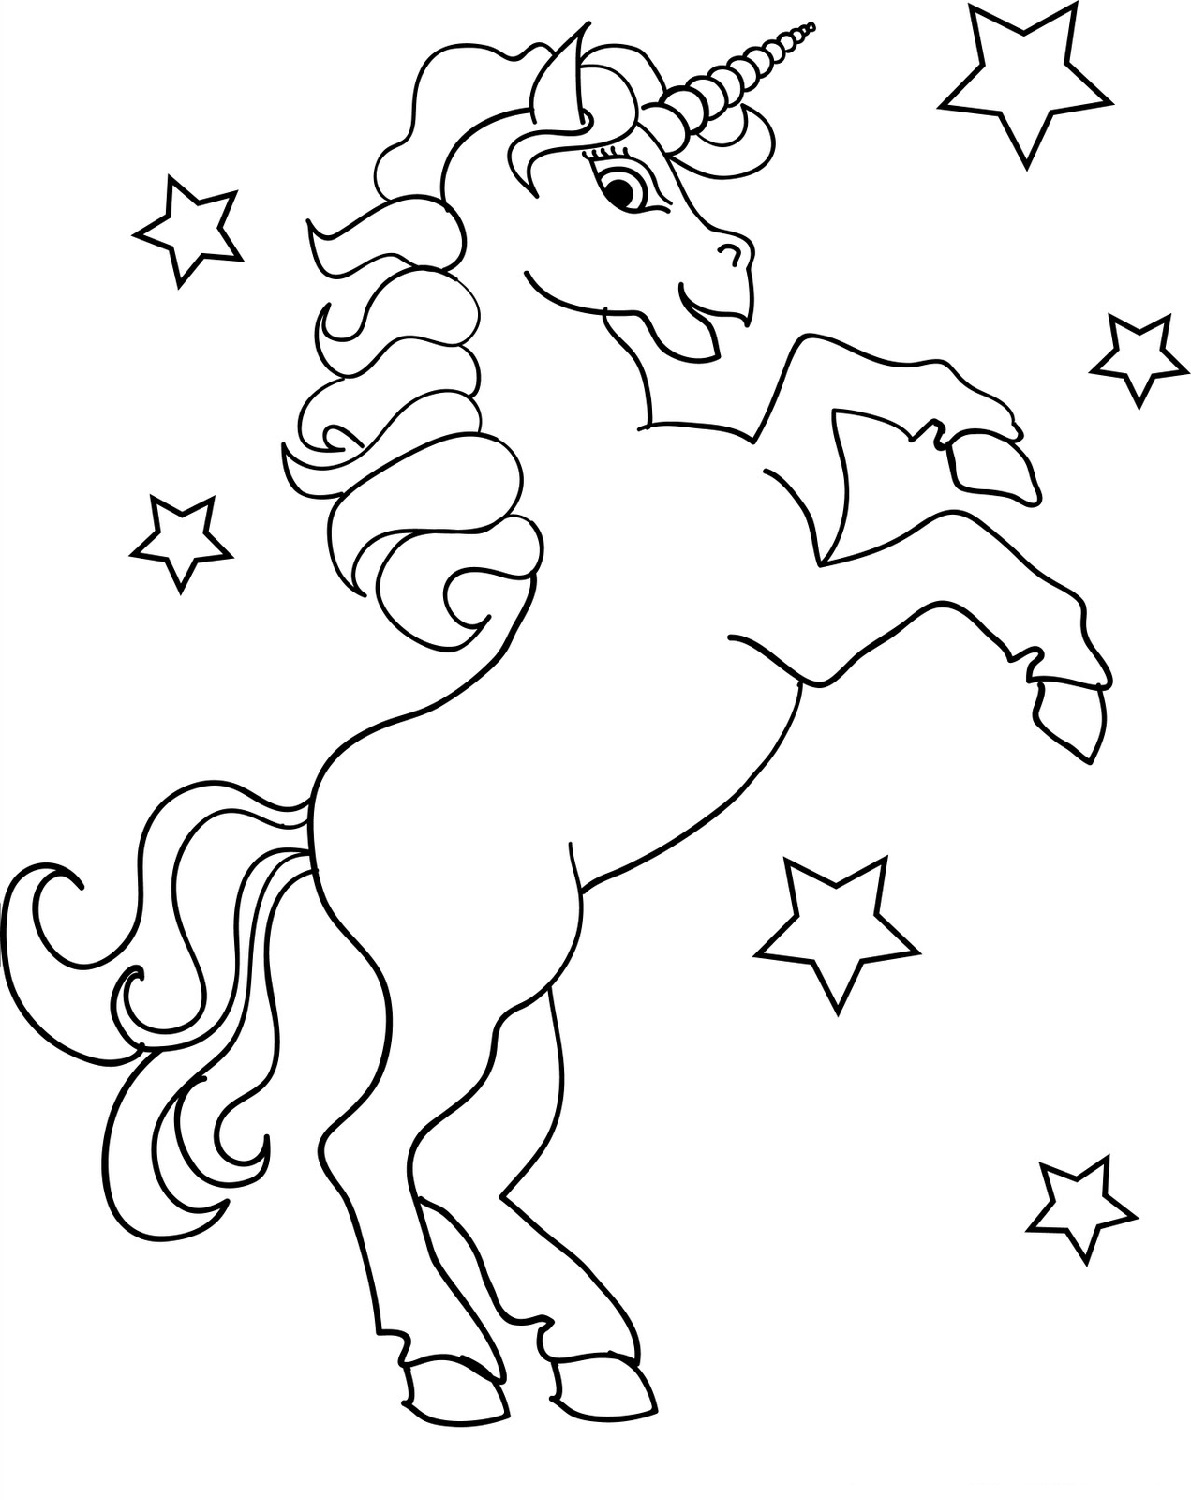 unicorn-color-pages-star